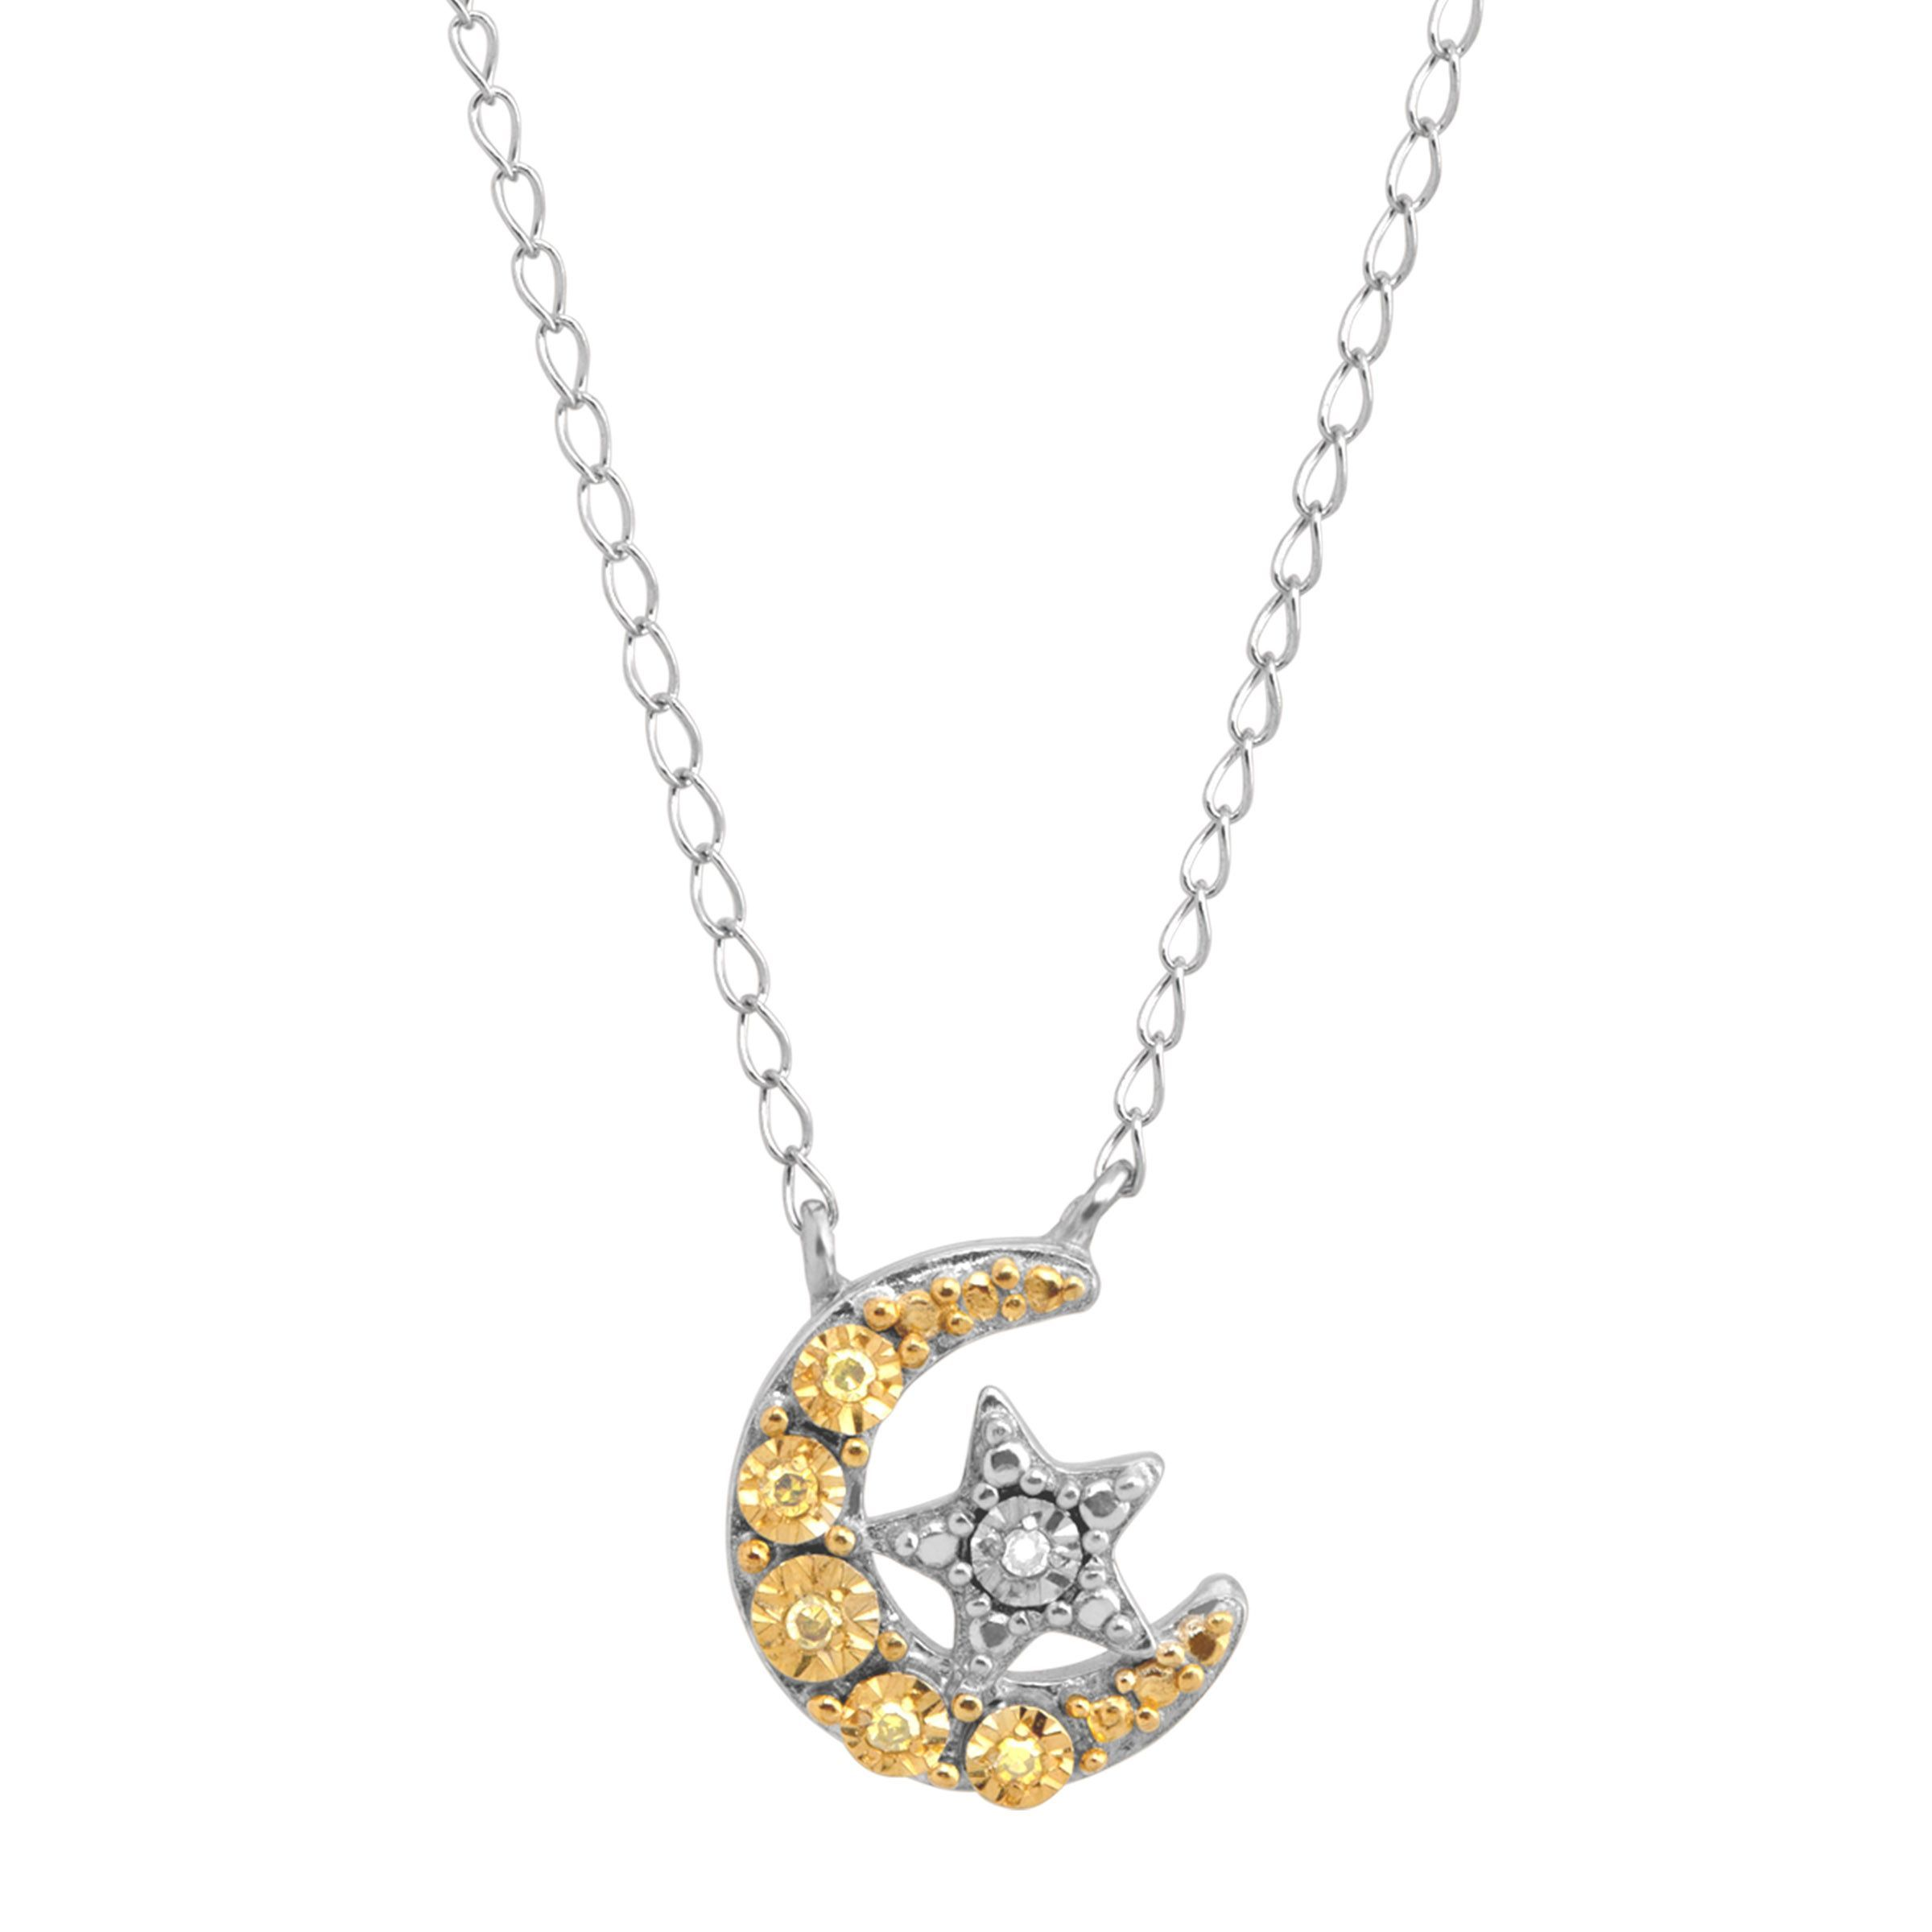 6639905b5 Details about Moon & Star Necklace with Diamonds in Sterling Silver & Gold  Plate, 17